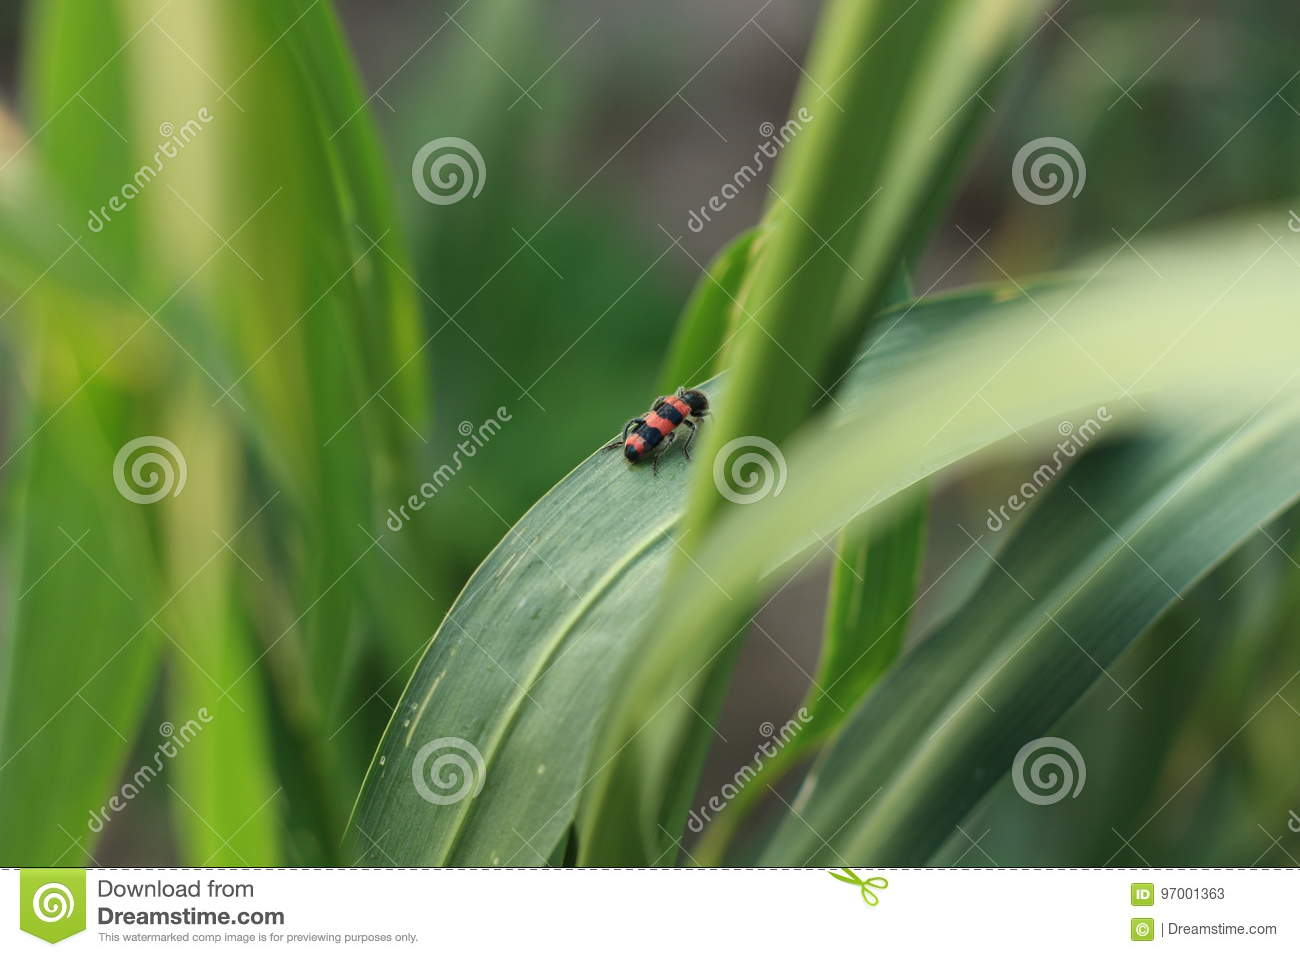 Insects and crops